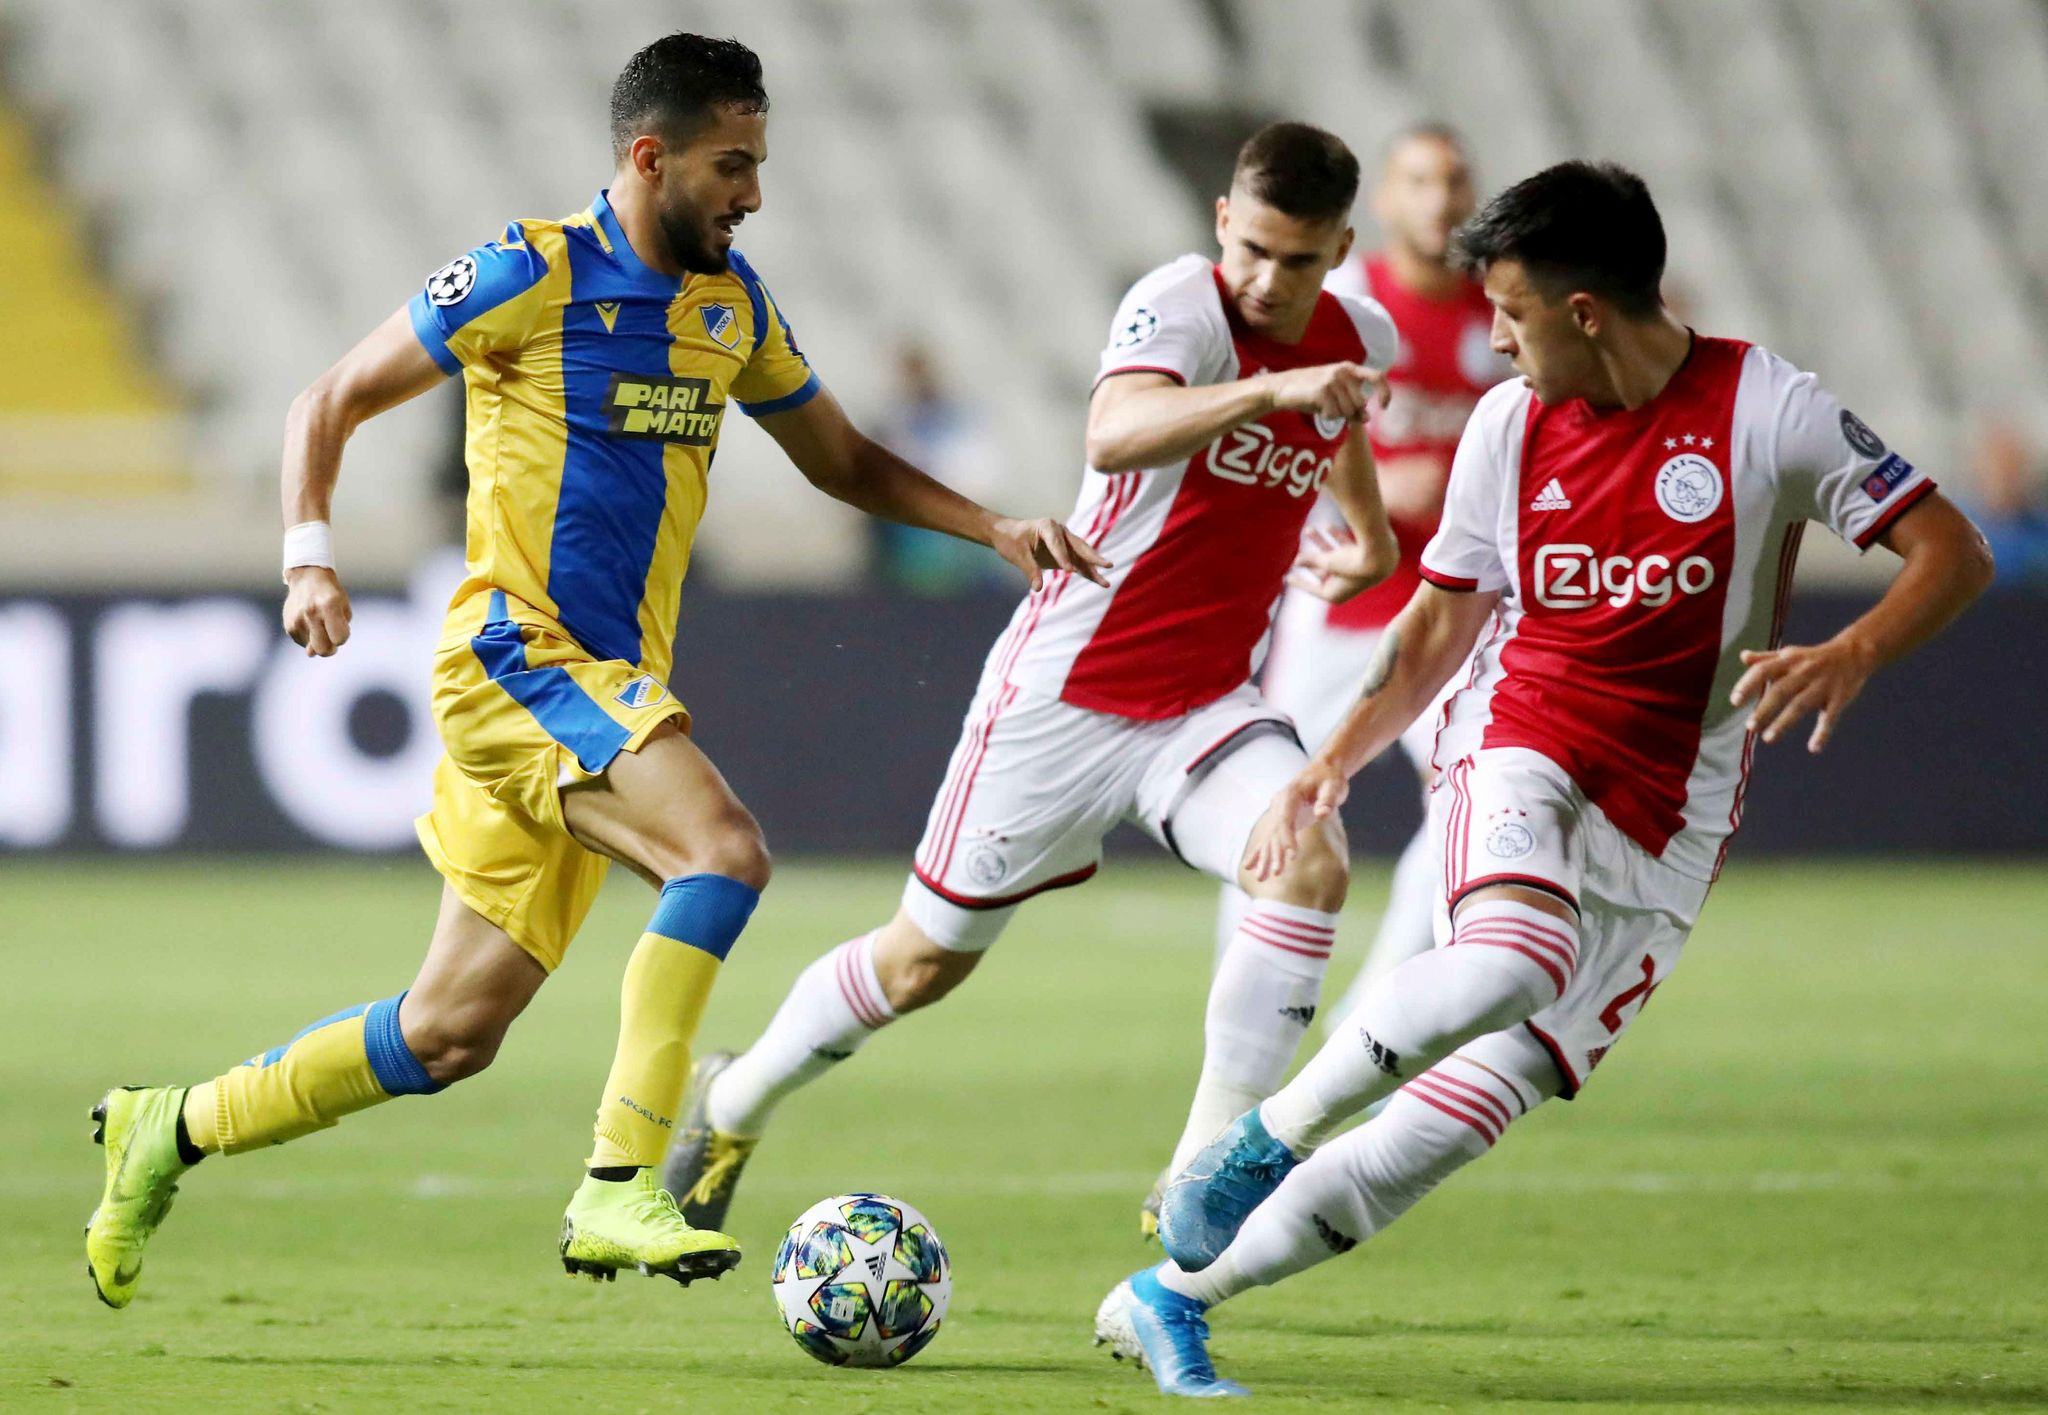 APOELs midfielder Musa Suliman (L) is marked by <HIT>Ajax</HIT>s defender Lisandro Martinez (R) during the UEFA Champions League playoff football match between Cyprus APOEL Nicosia and Netherlands <HIT>Ajax</HIT> Amsterdam at the GSP stadium in Nicosia on August 20, 2019. (Photo by - / AFP)